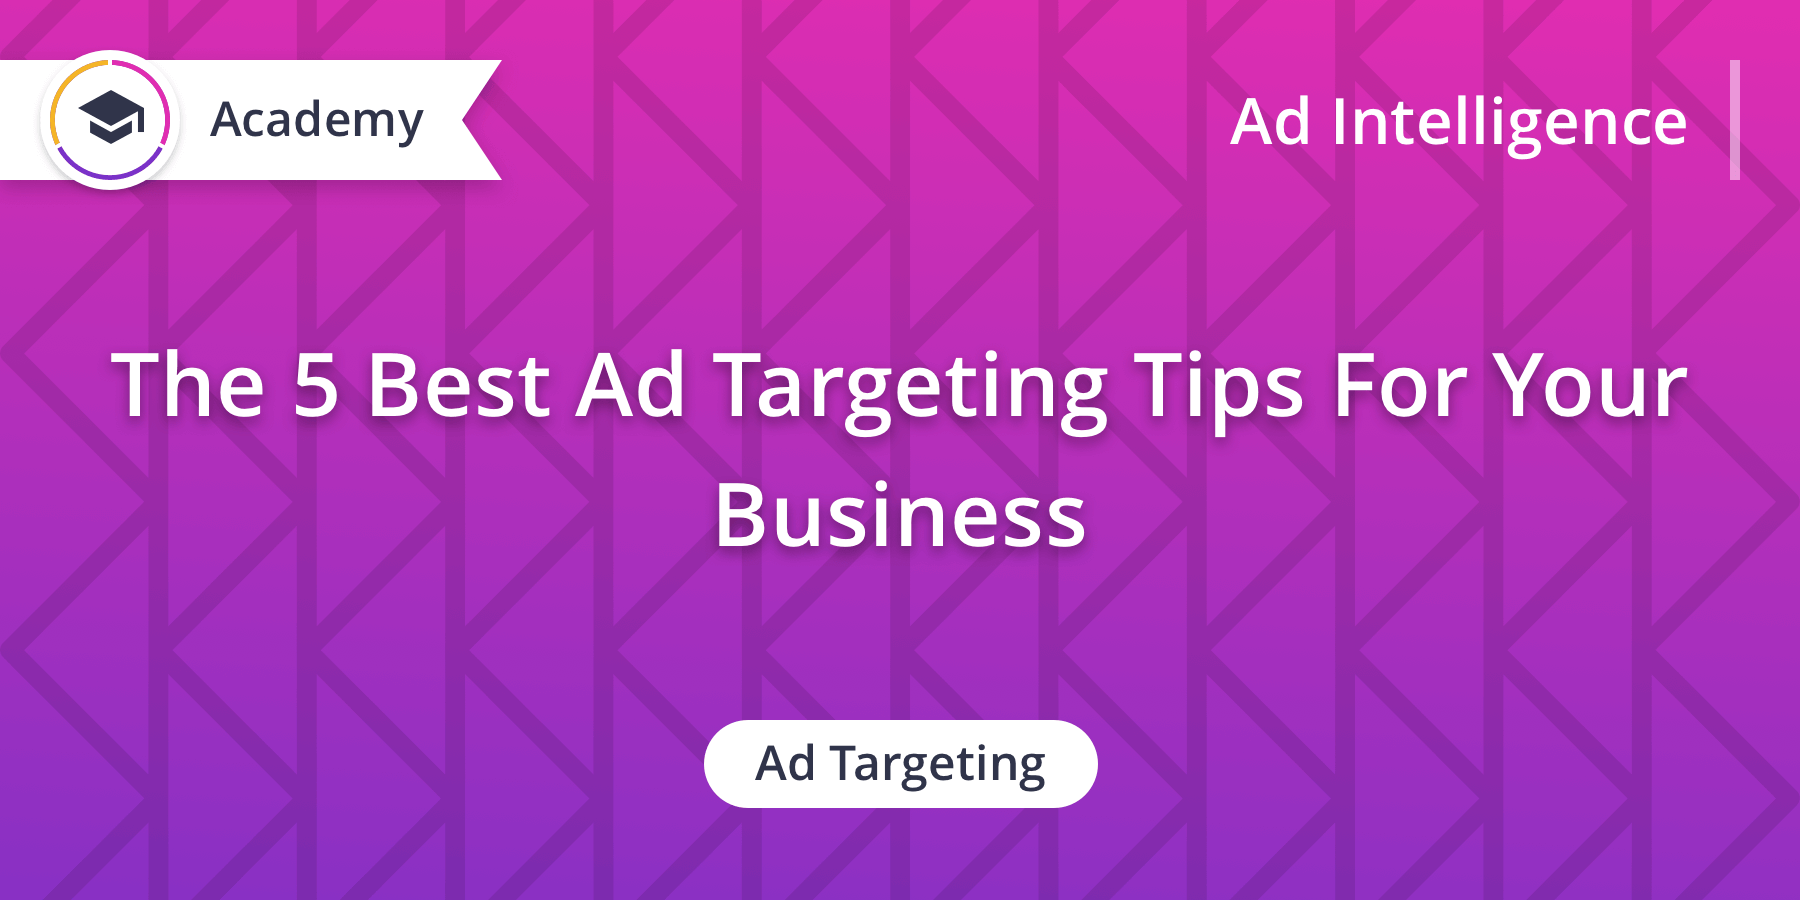 The 5 Best Mobile Ad Targeting Tips For Your Business